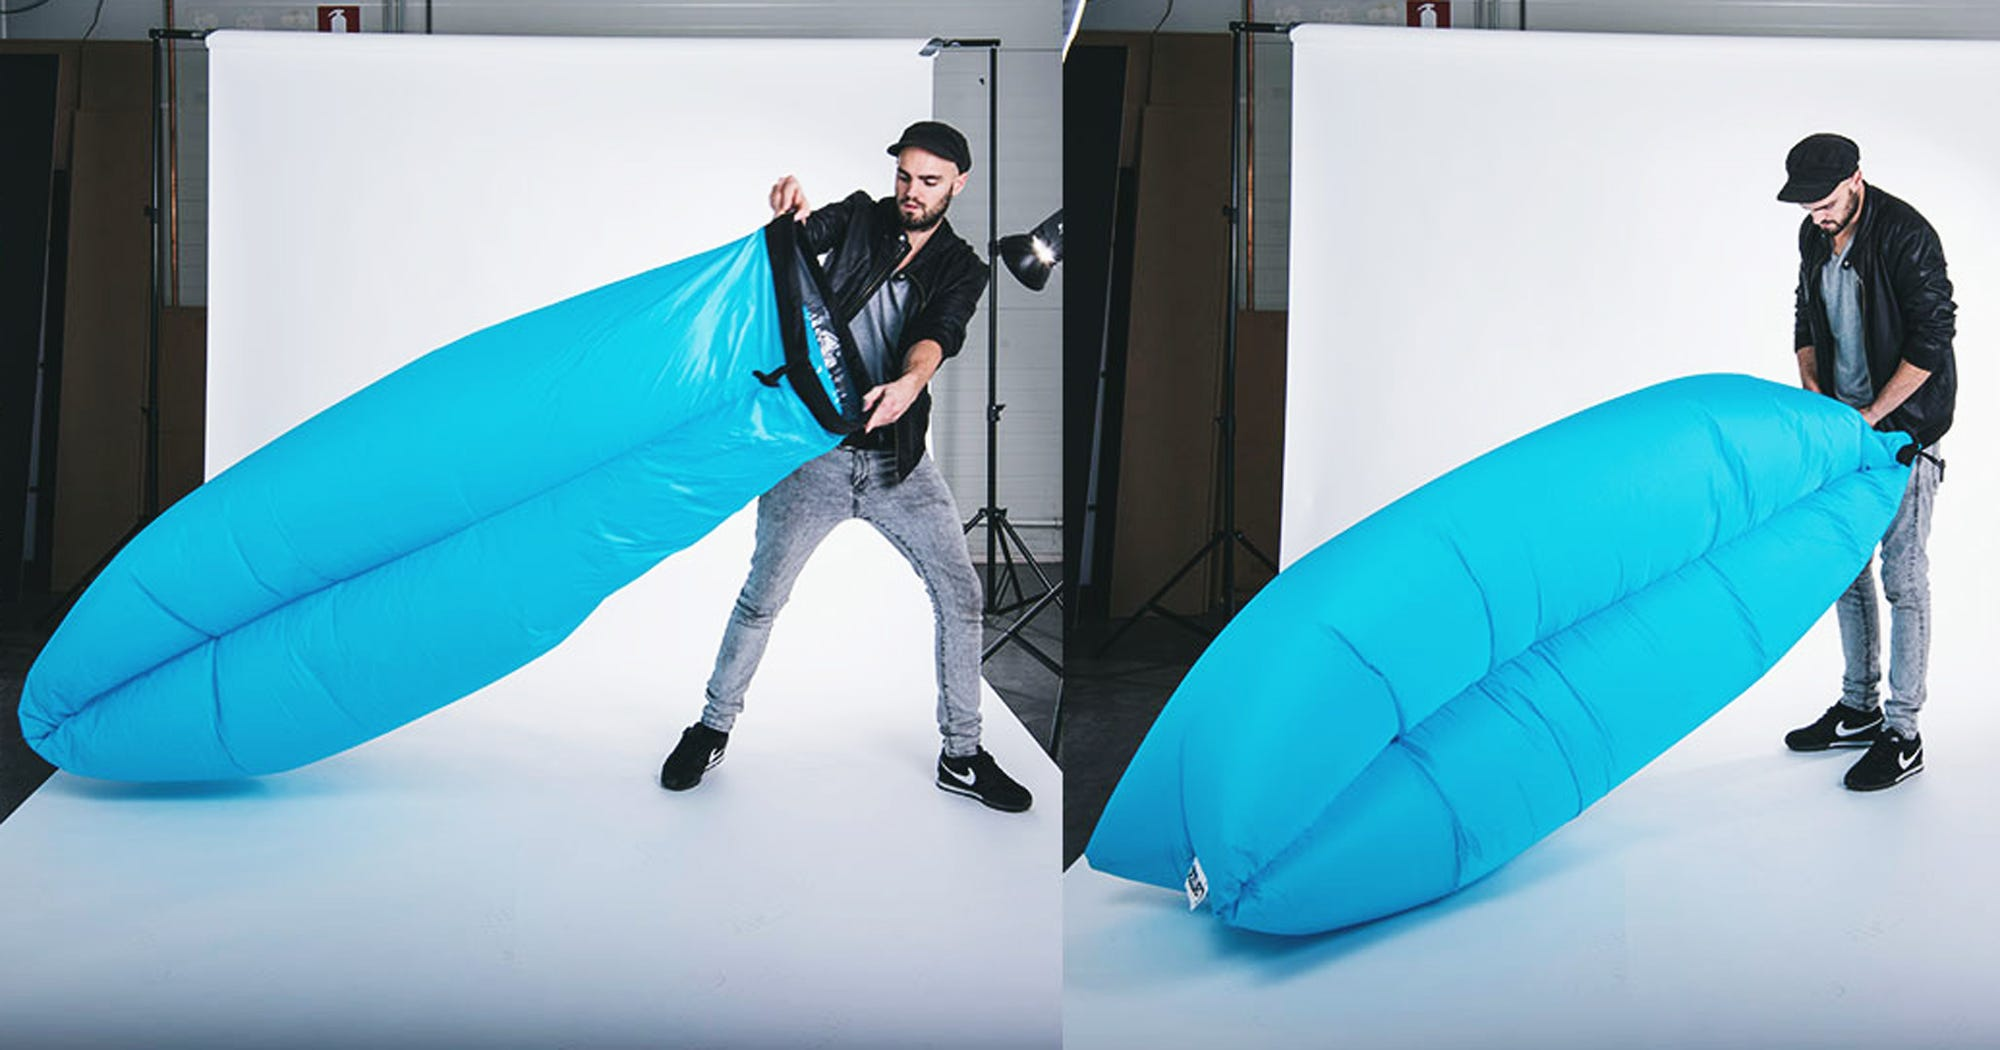 vulva collection.11 years old dirl.on.vimeo Does This Inflatable, Portable Couch Really Look Like A Vagina? |  Refinery29 | Bloglovin'